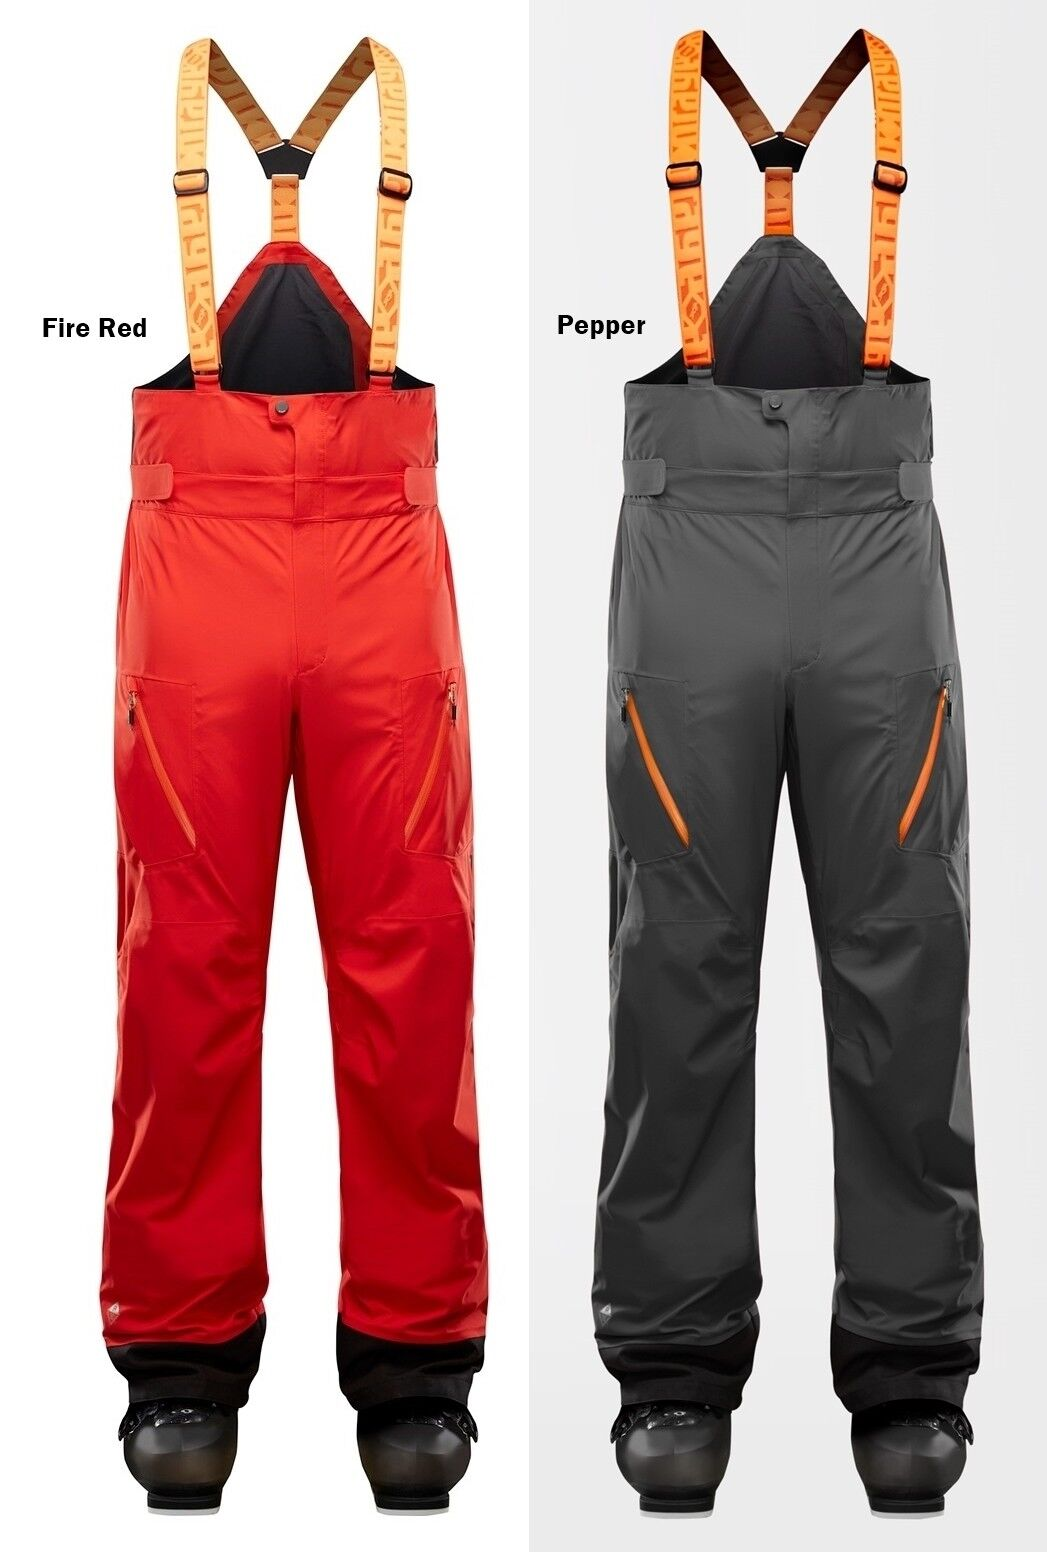 NEW Orage Rambler Pant  Mens XS-XXL G  Red 30k Ski Shell Pants Msrp 400  cheap sale